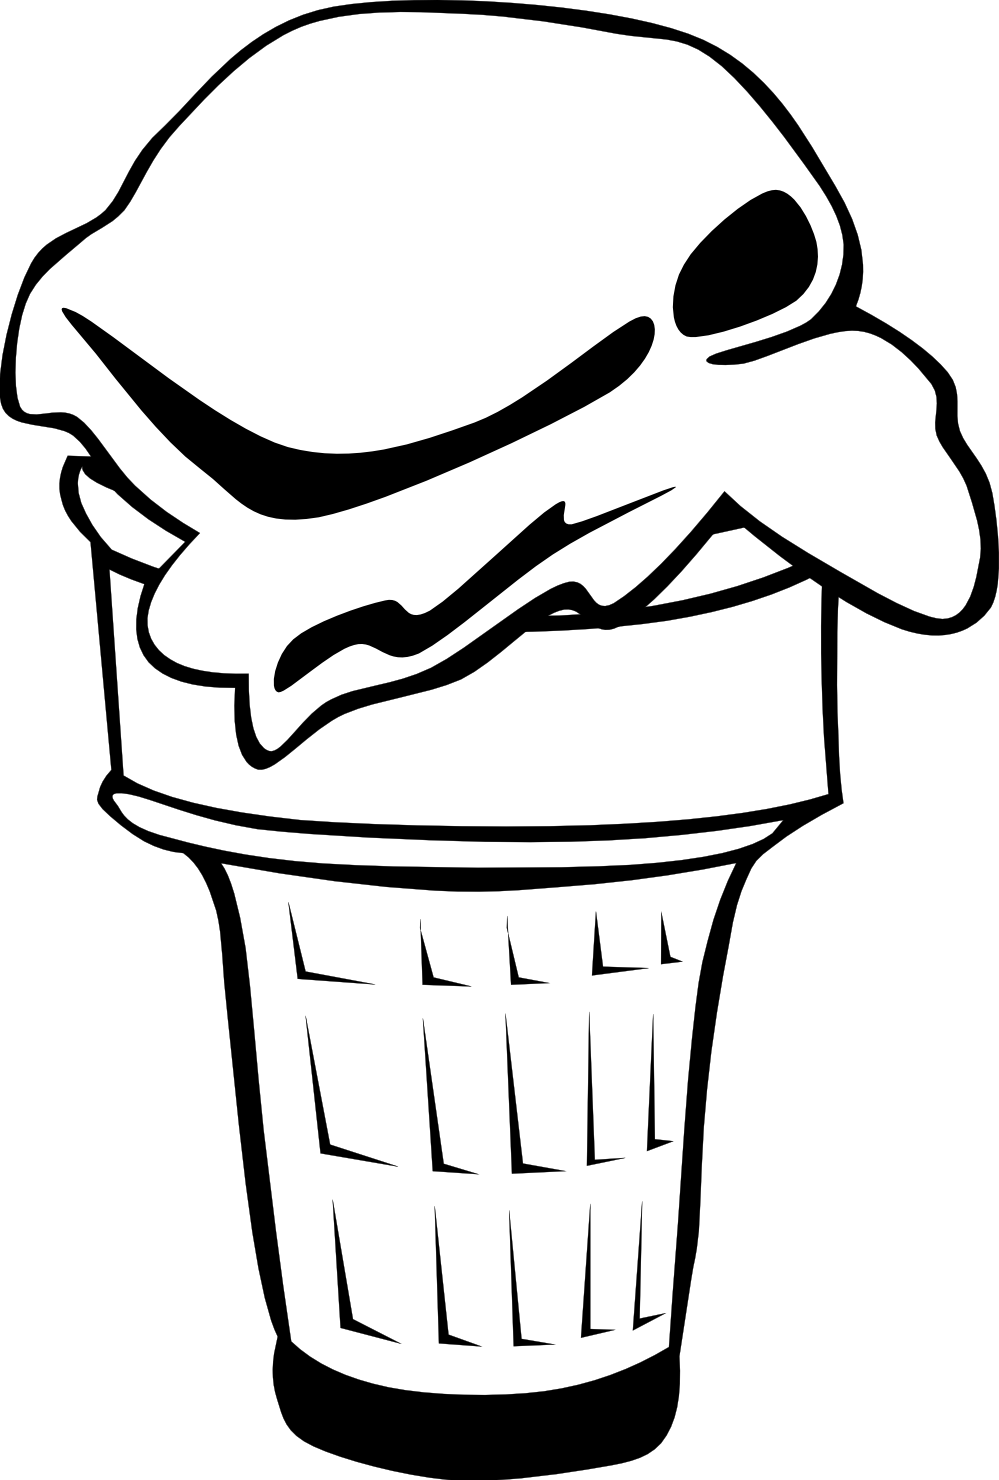 ice%20cream%20social%20clipart%20black%20and%20white